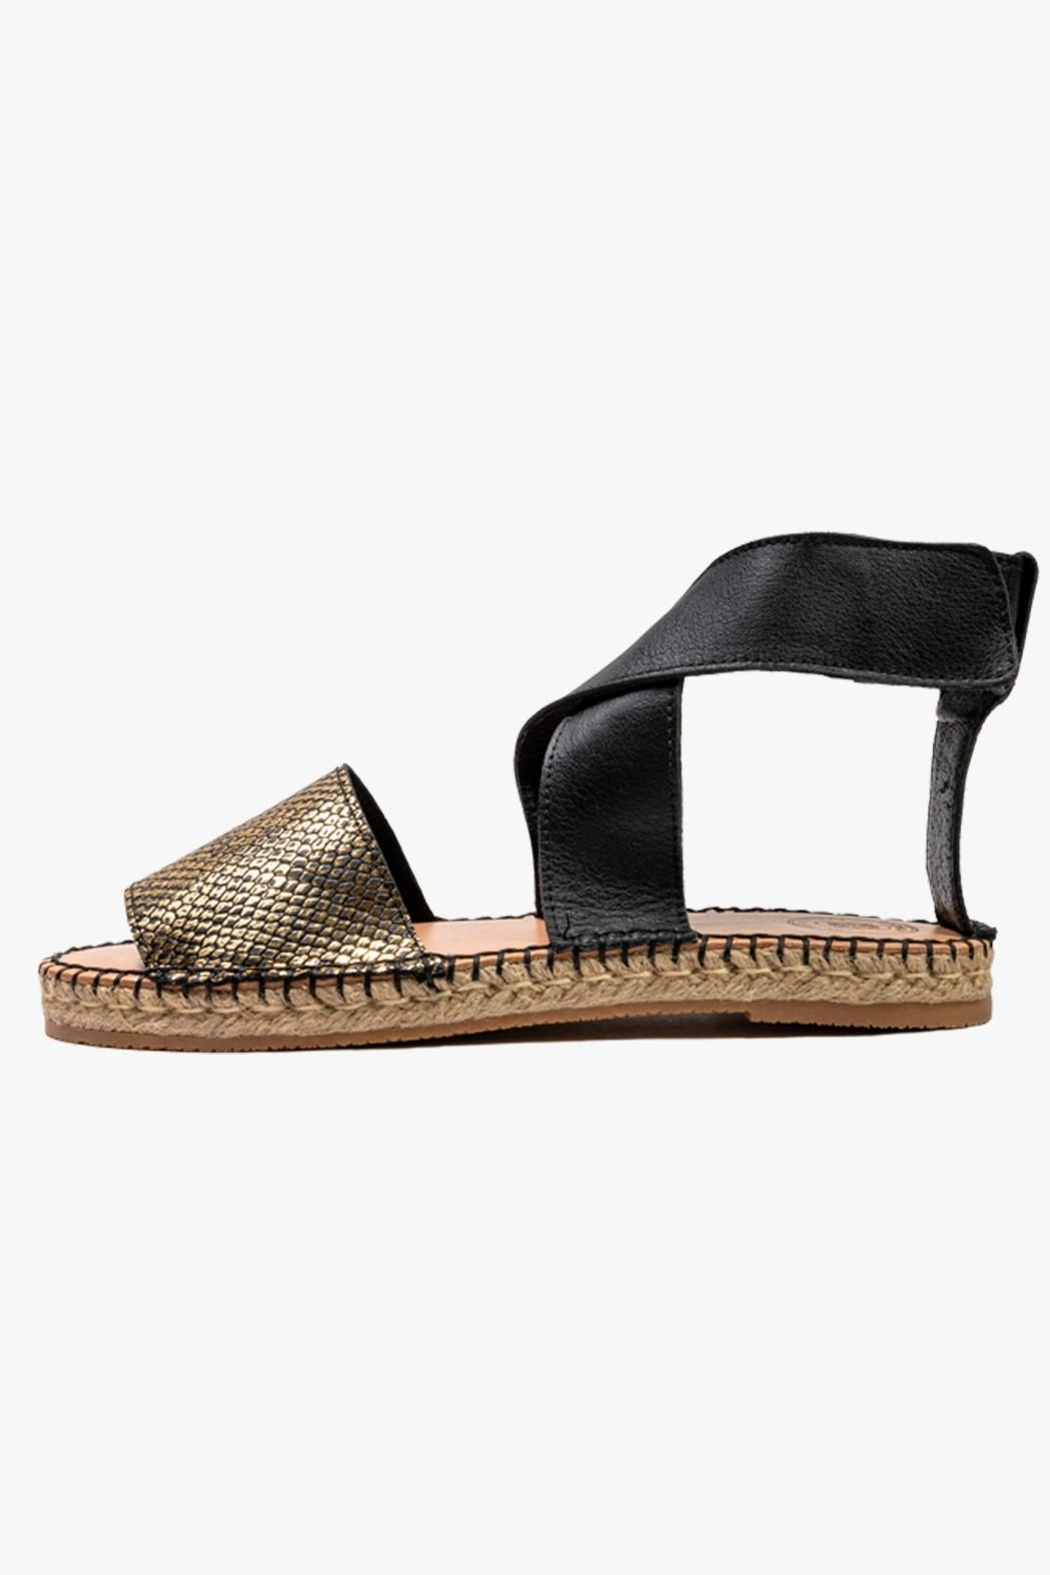 Morkas Shoes Pale Gold Synthetic Ankle Strap Espadrilles - Main Image